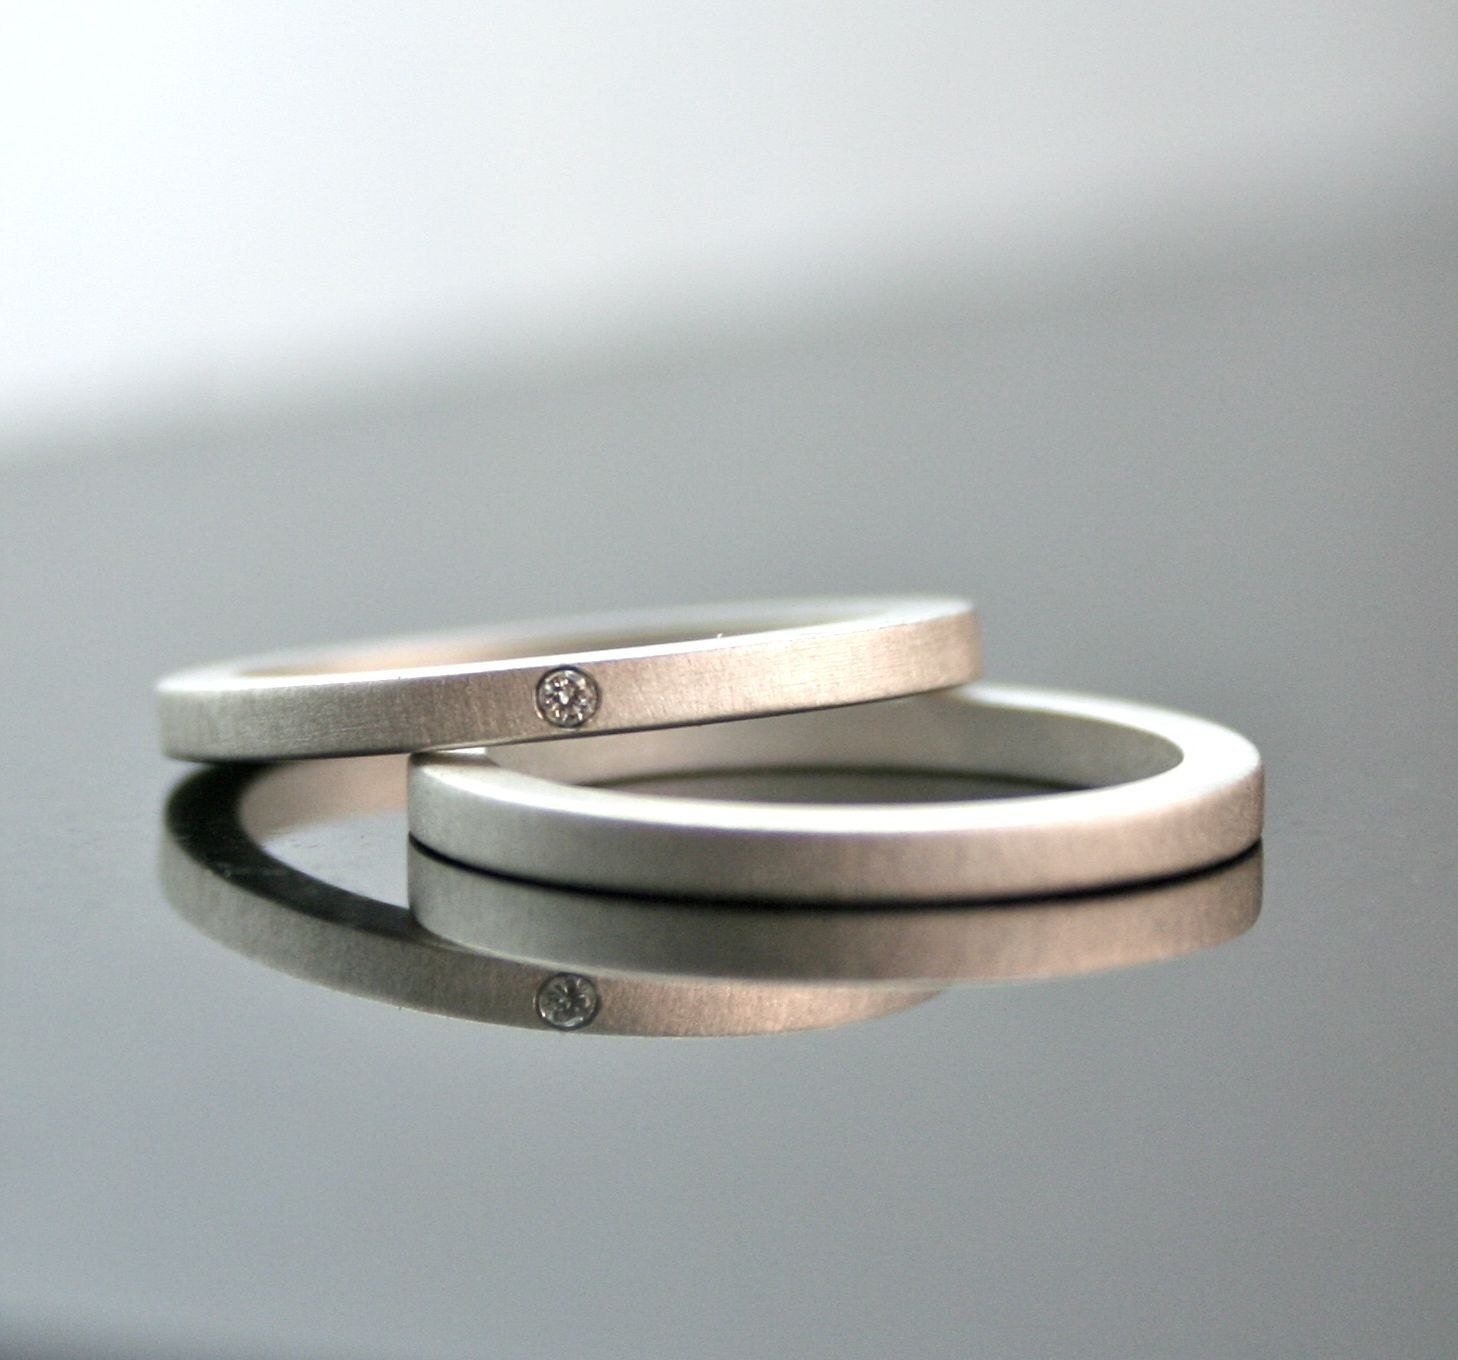 zoom - Engagement Ring And Wedding Band Set